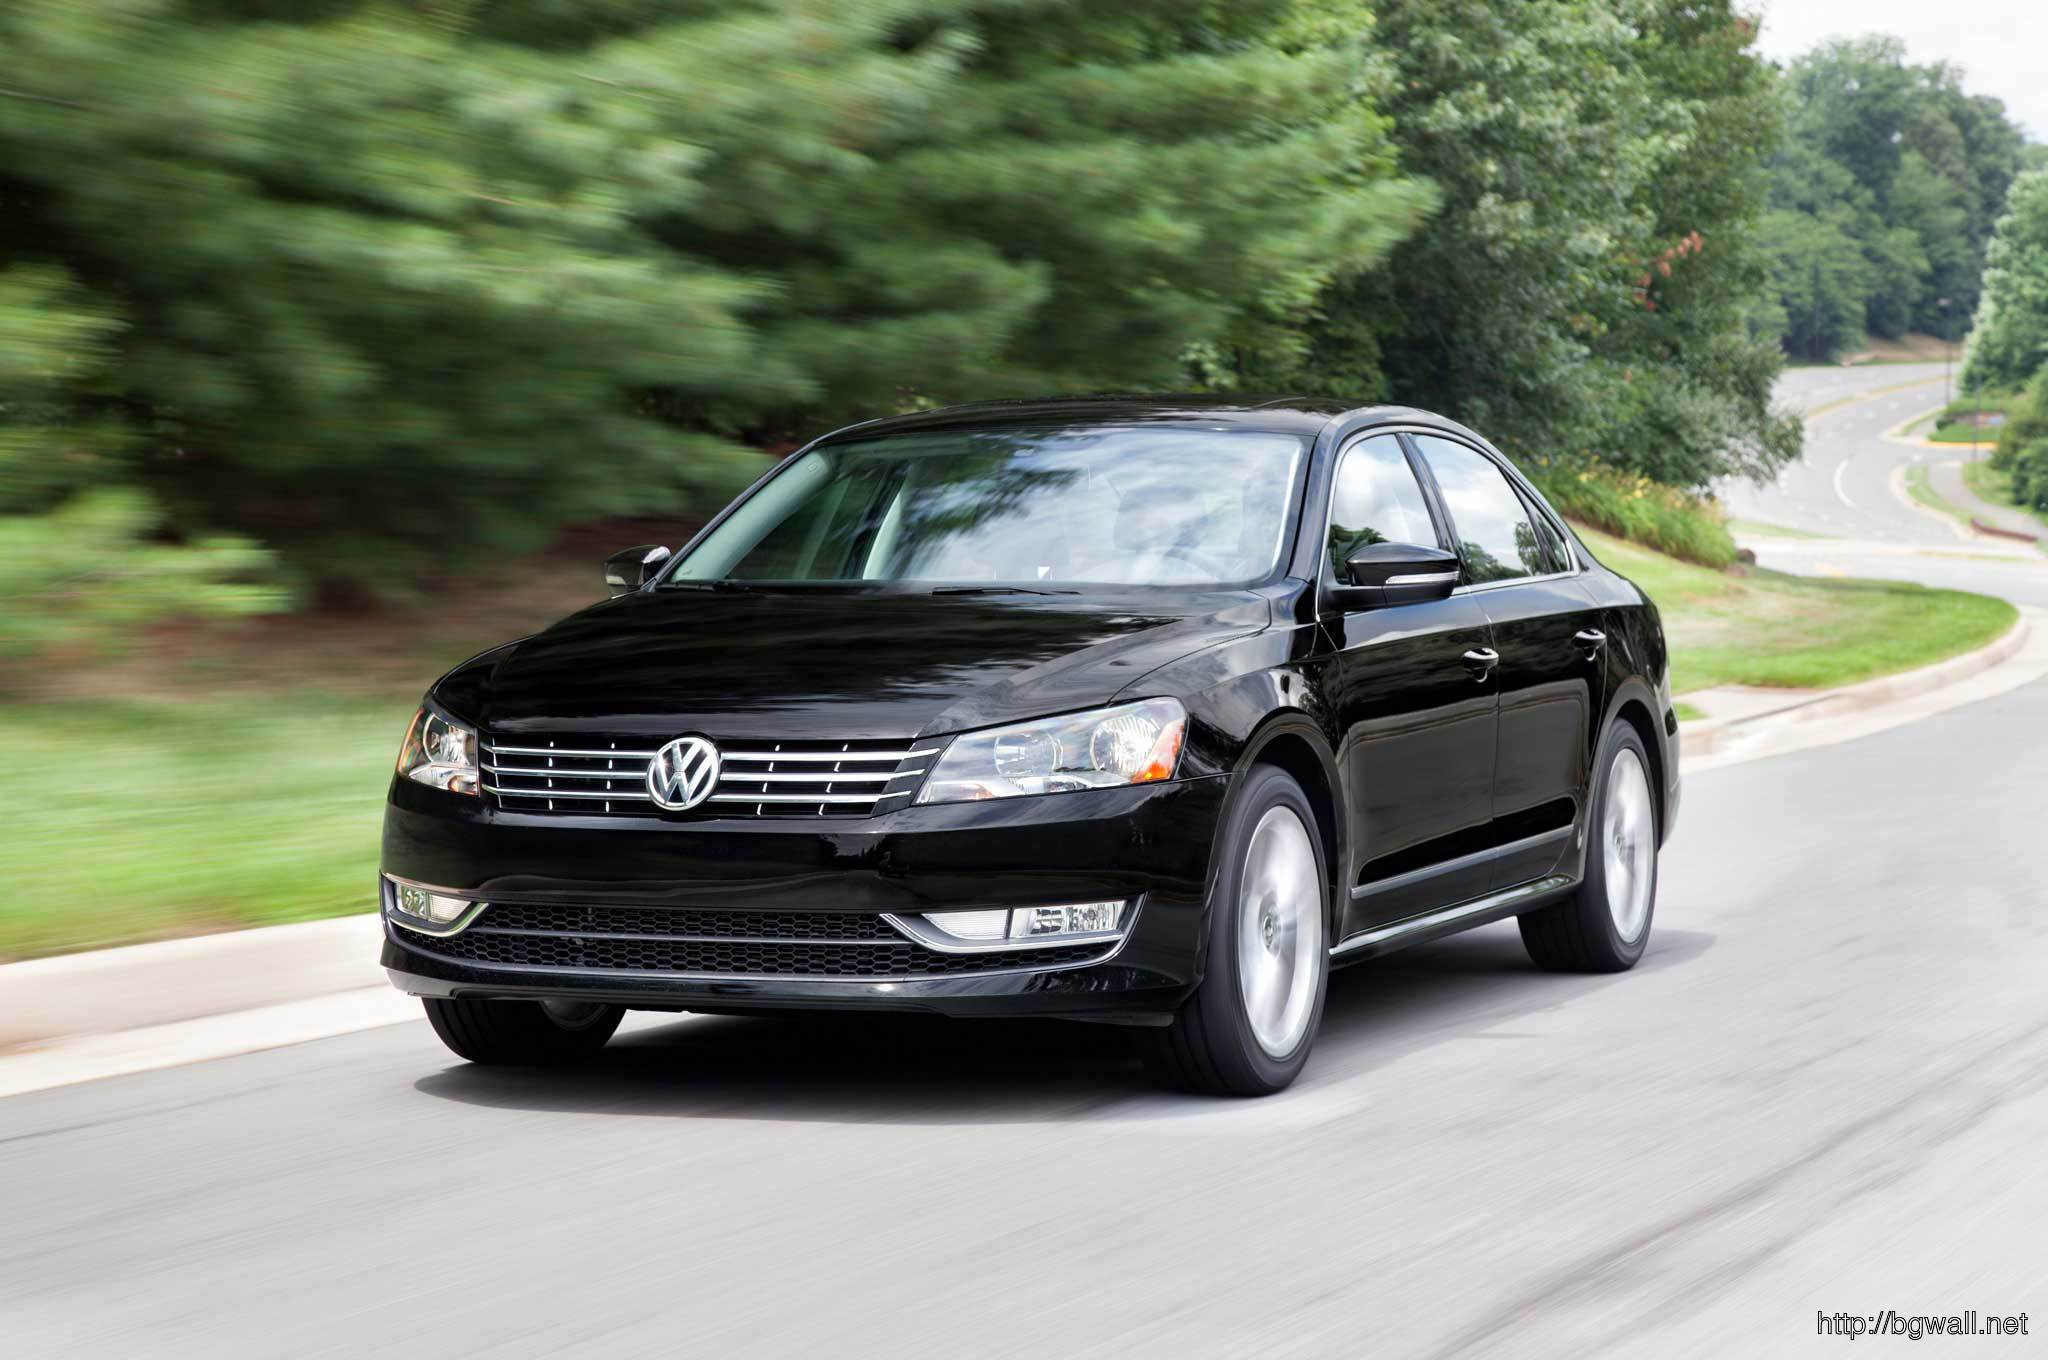 2014 vw passat review 1024 680 2014 vw passat background wallpaper hd. Black Bedroom Furniture Sets. Home Design Ideas